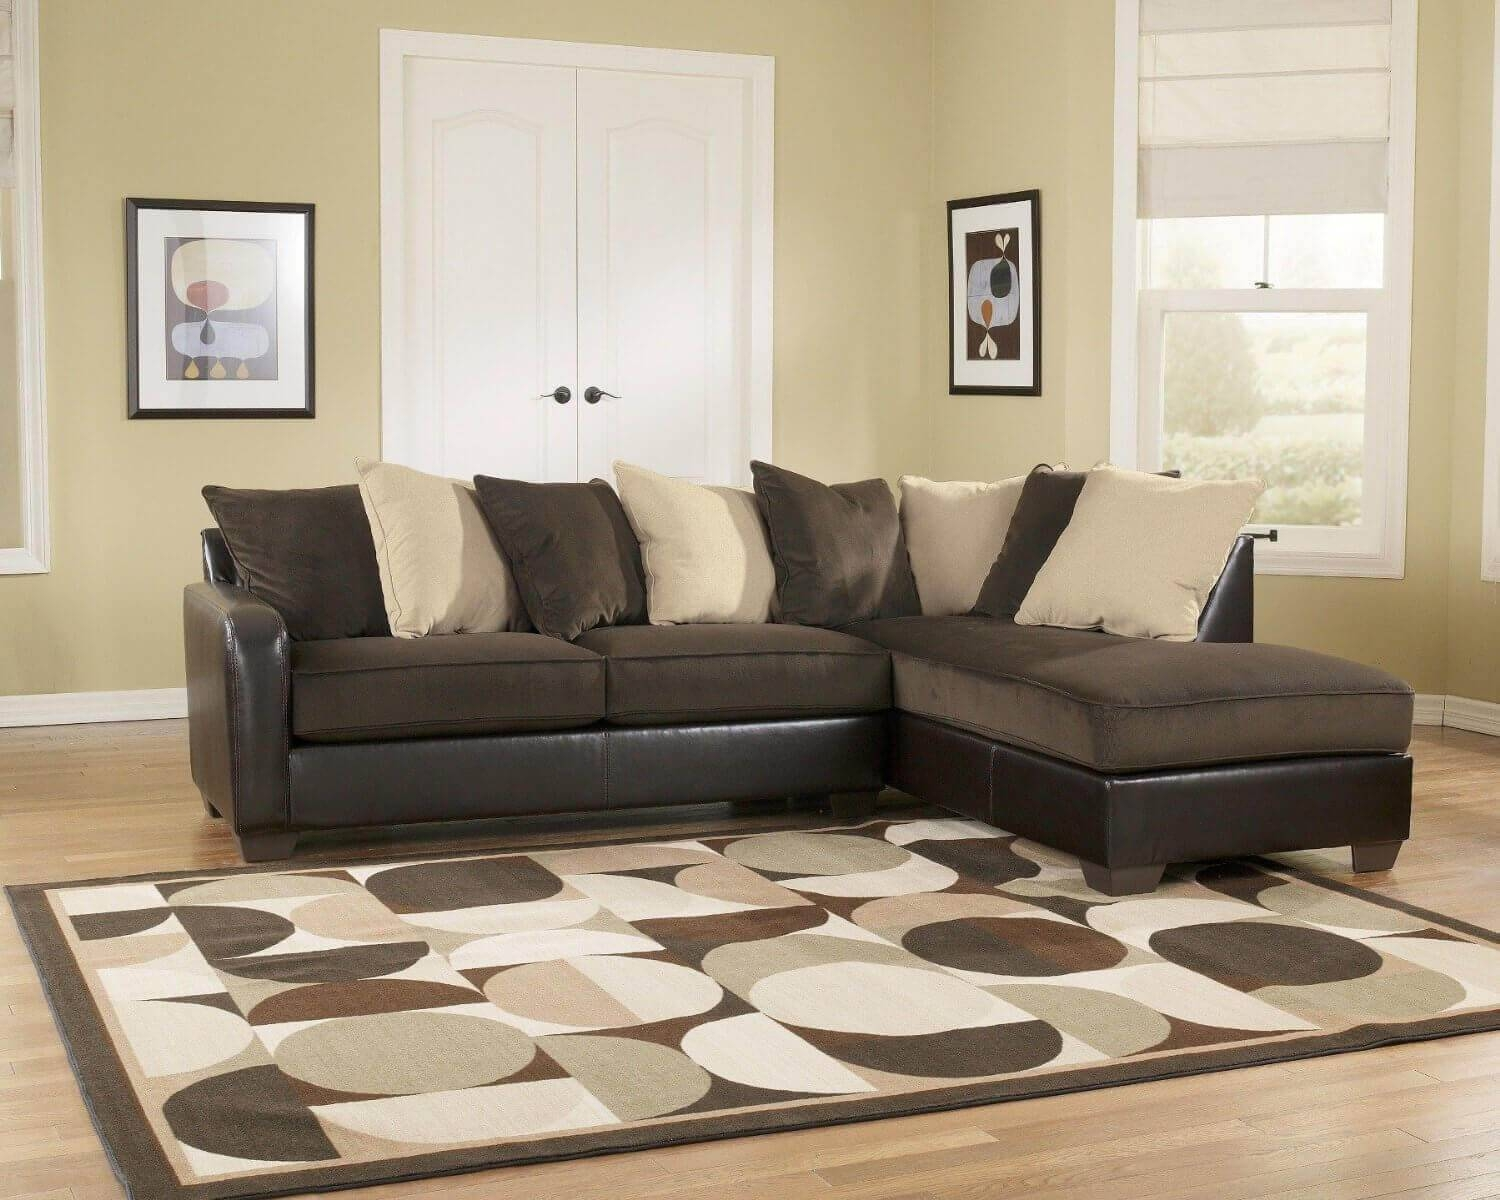 100 Beautiful Sectional Sofas Under $1,000 throughout Wide Seat Sectional Sofas (Image 1 of 25)